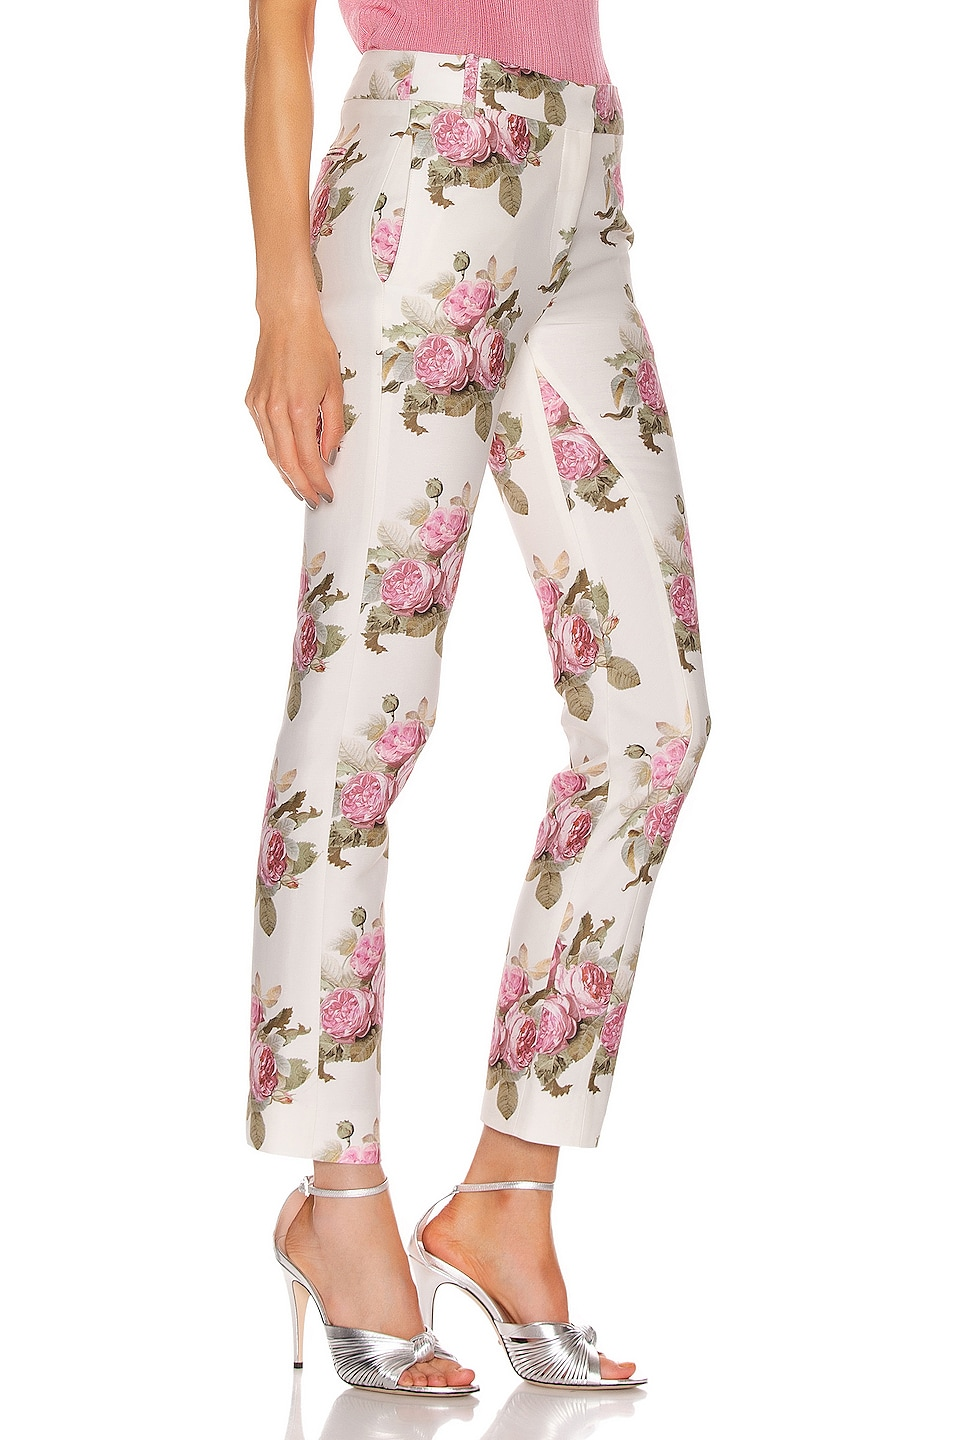 Image 2 of PACO RABANNE Floral Printed Trouser Pant in Light Beige Bouquet